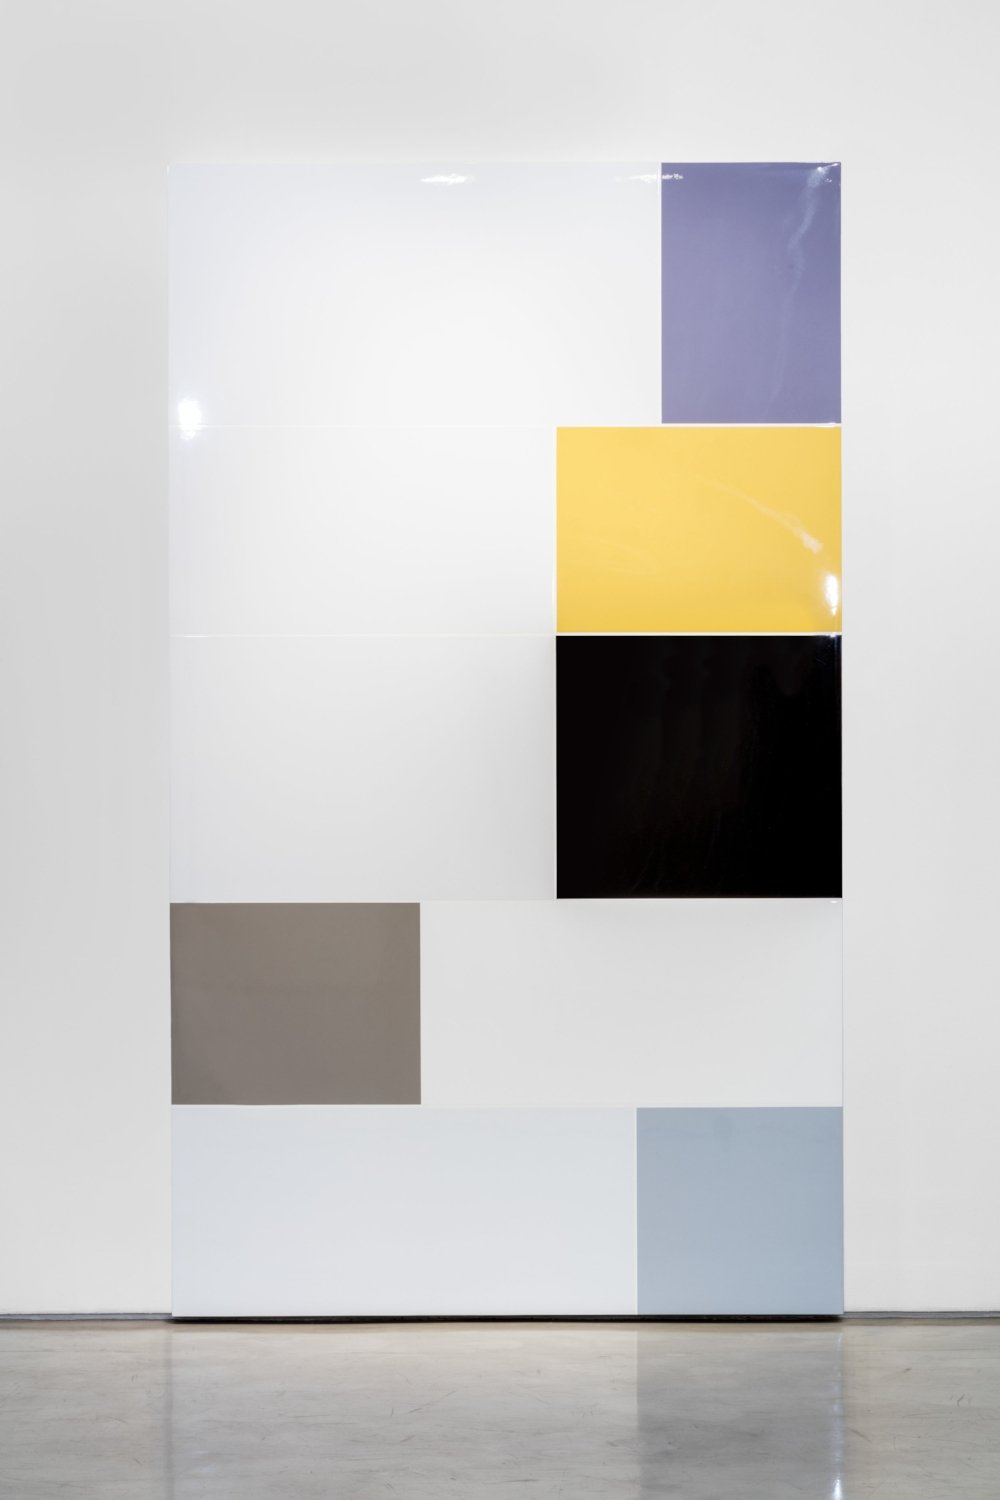 Image Search: Heyoka, The Contrarian, Polished urethane on gessoed canvas, 2016